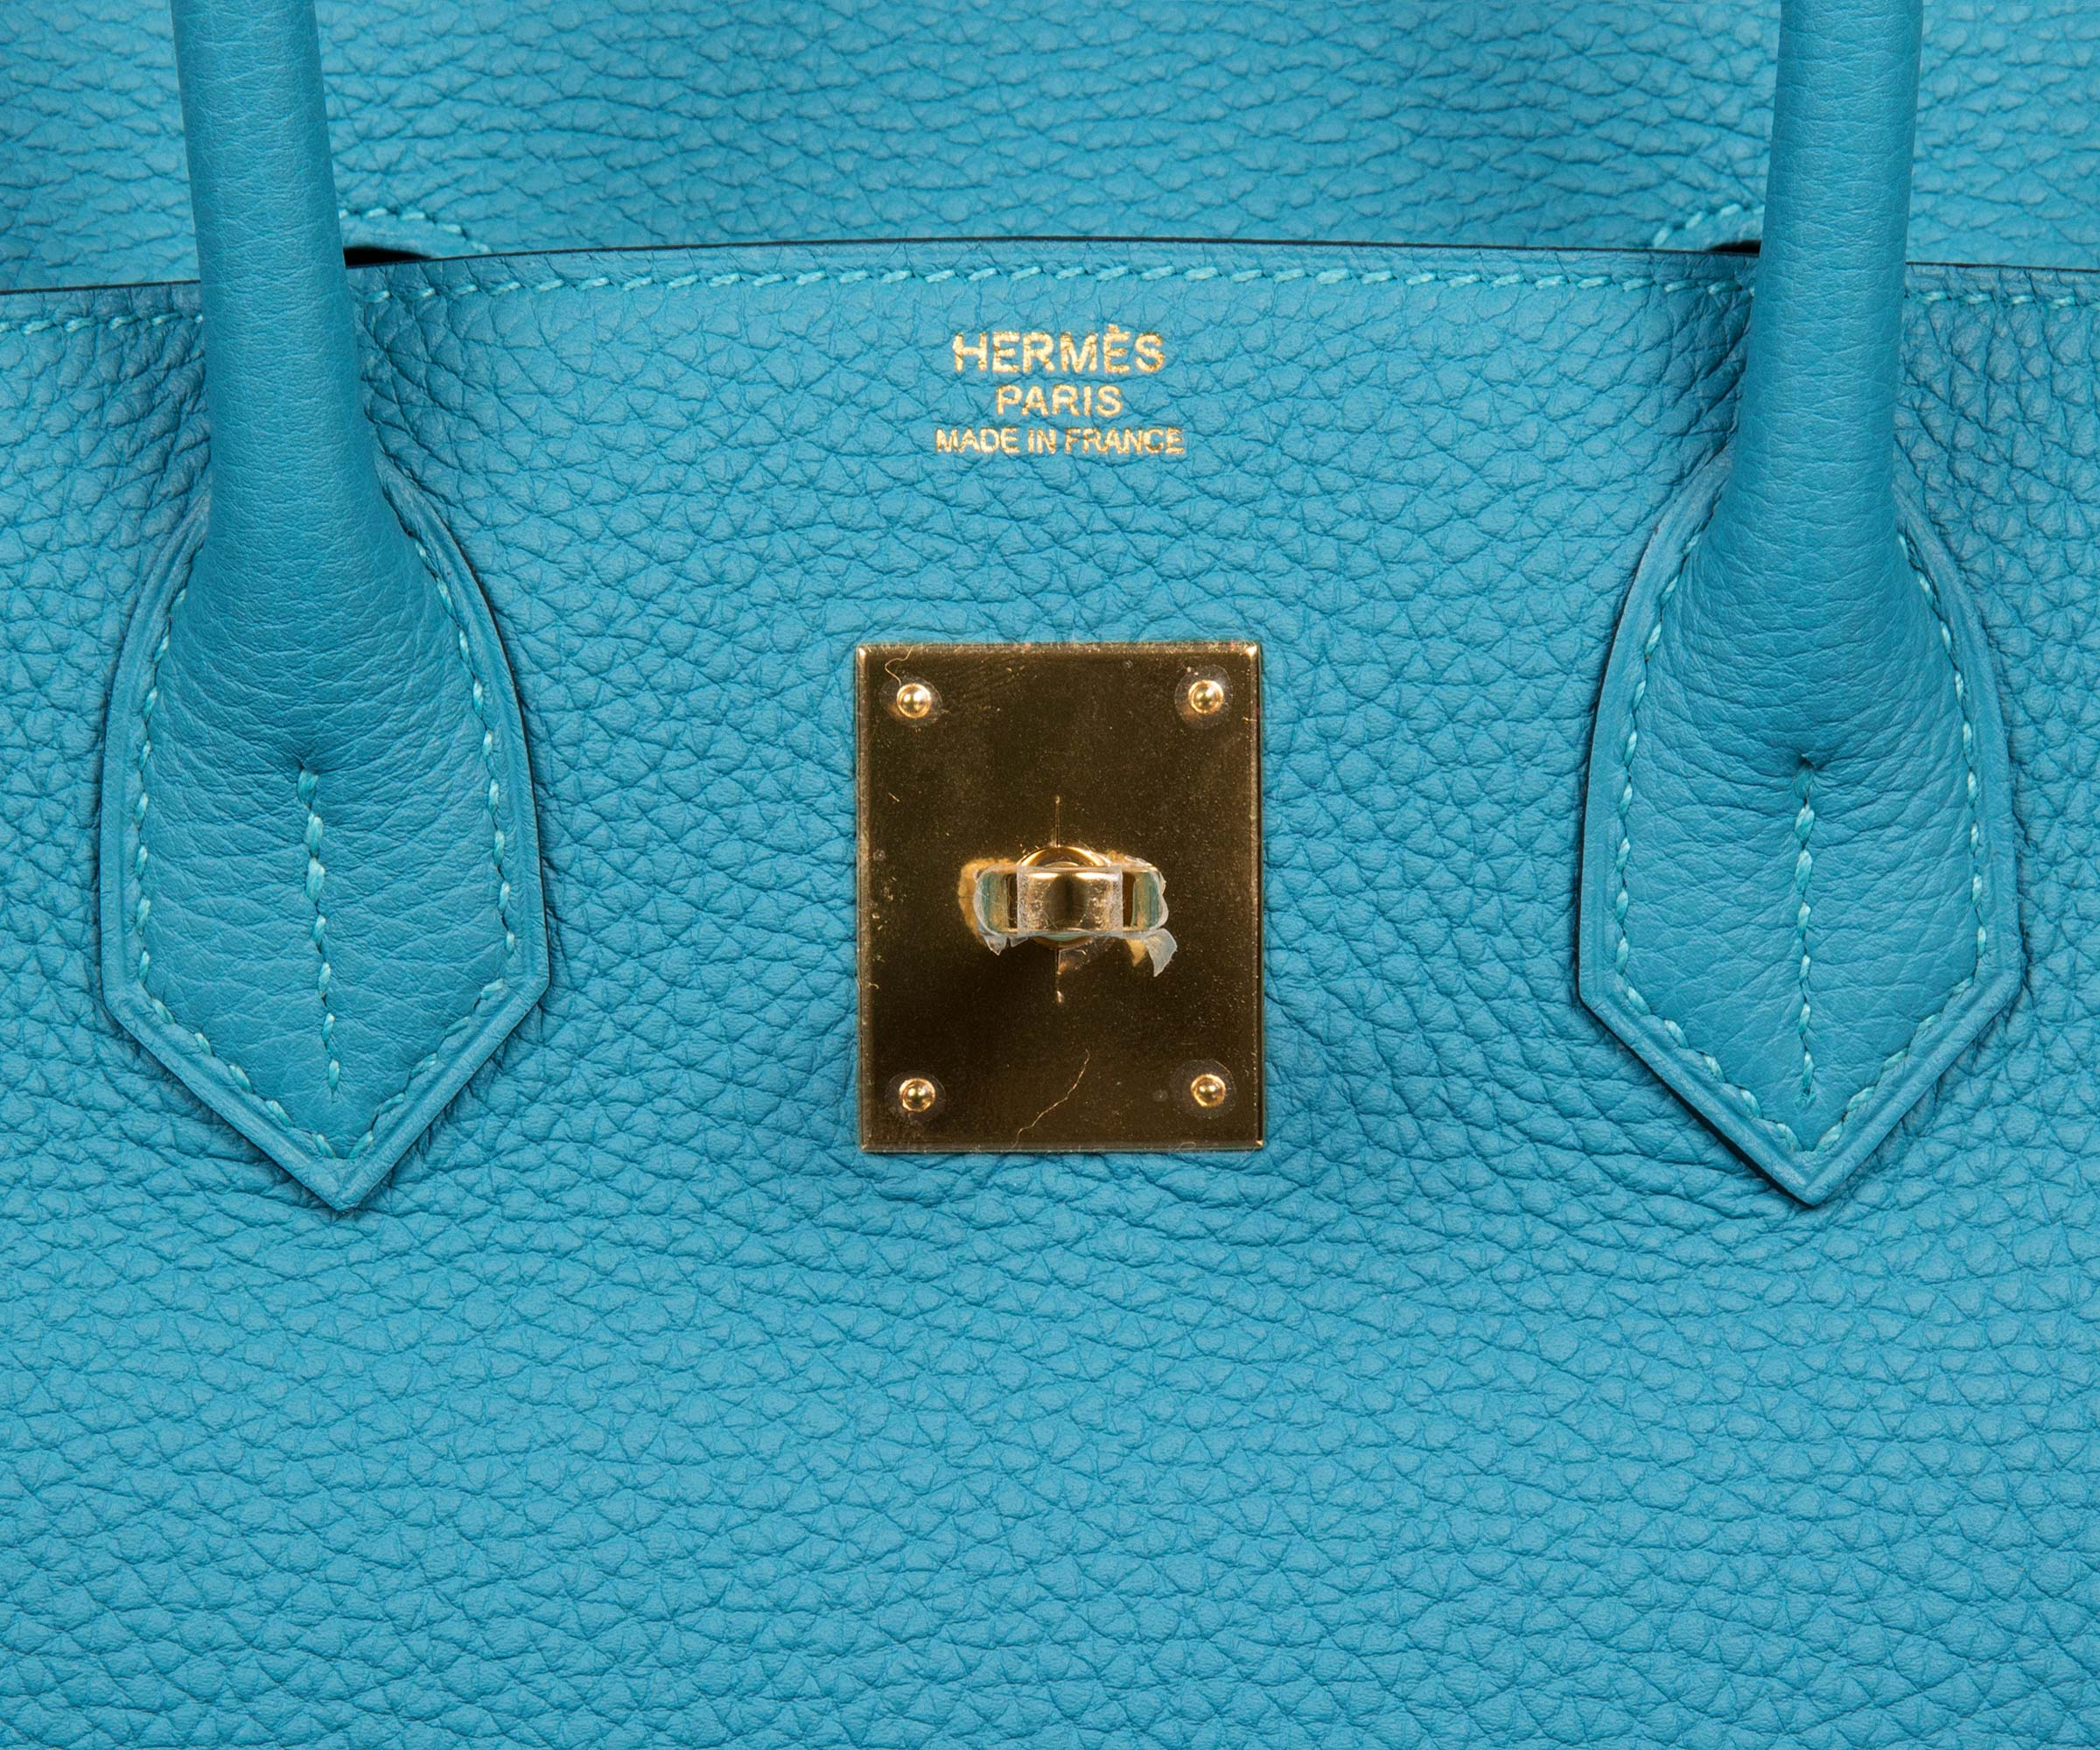 inexpensive bags and purses - hermes birkin bag 30cm gold togo gold hardware, great hermes handbags